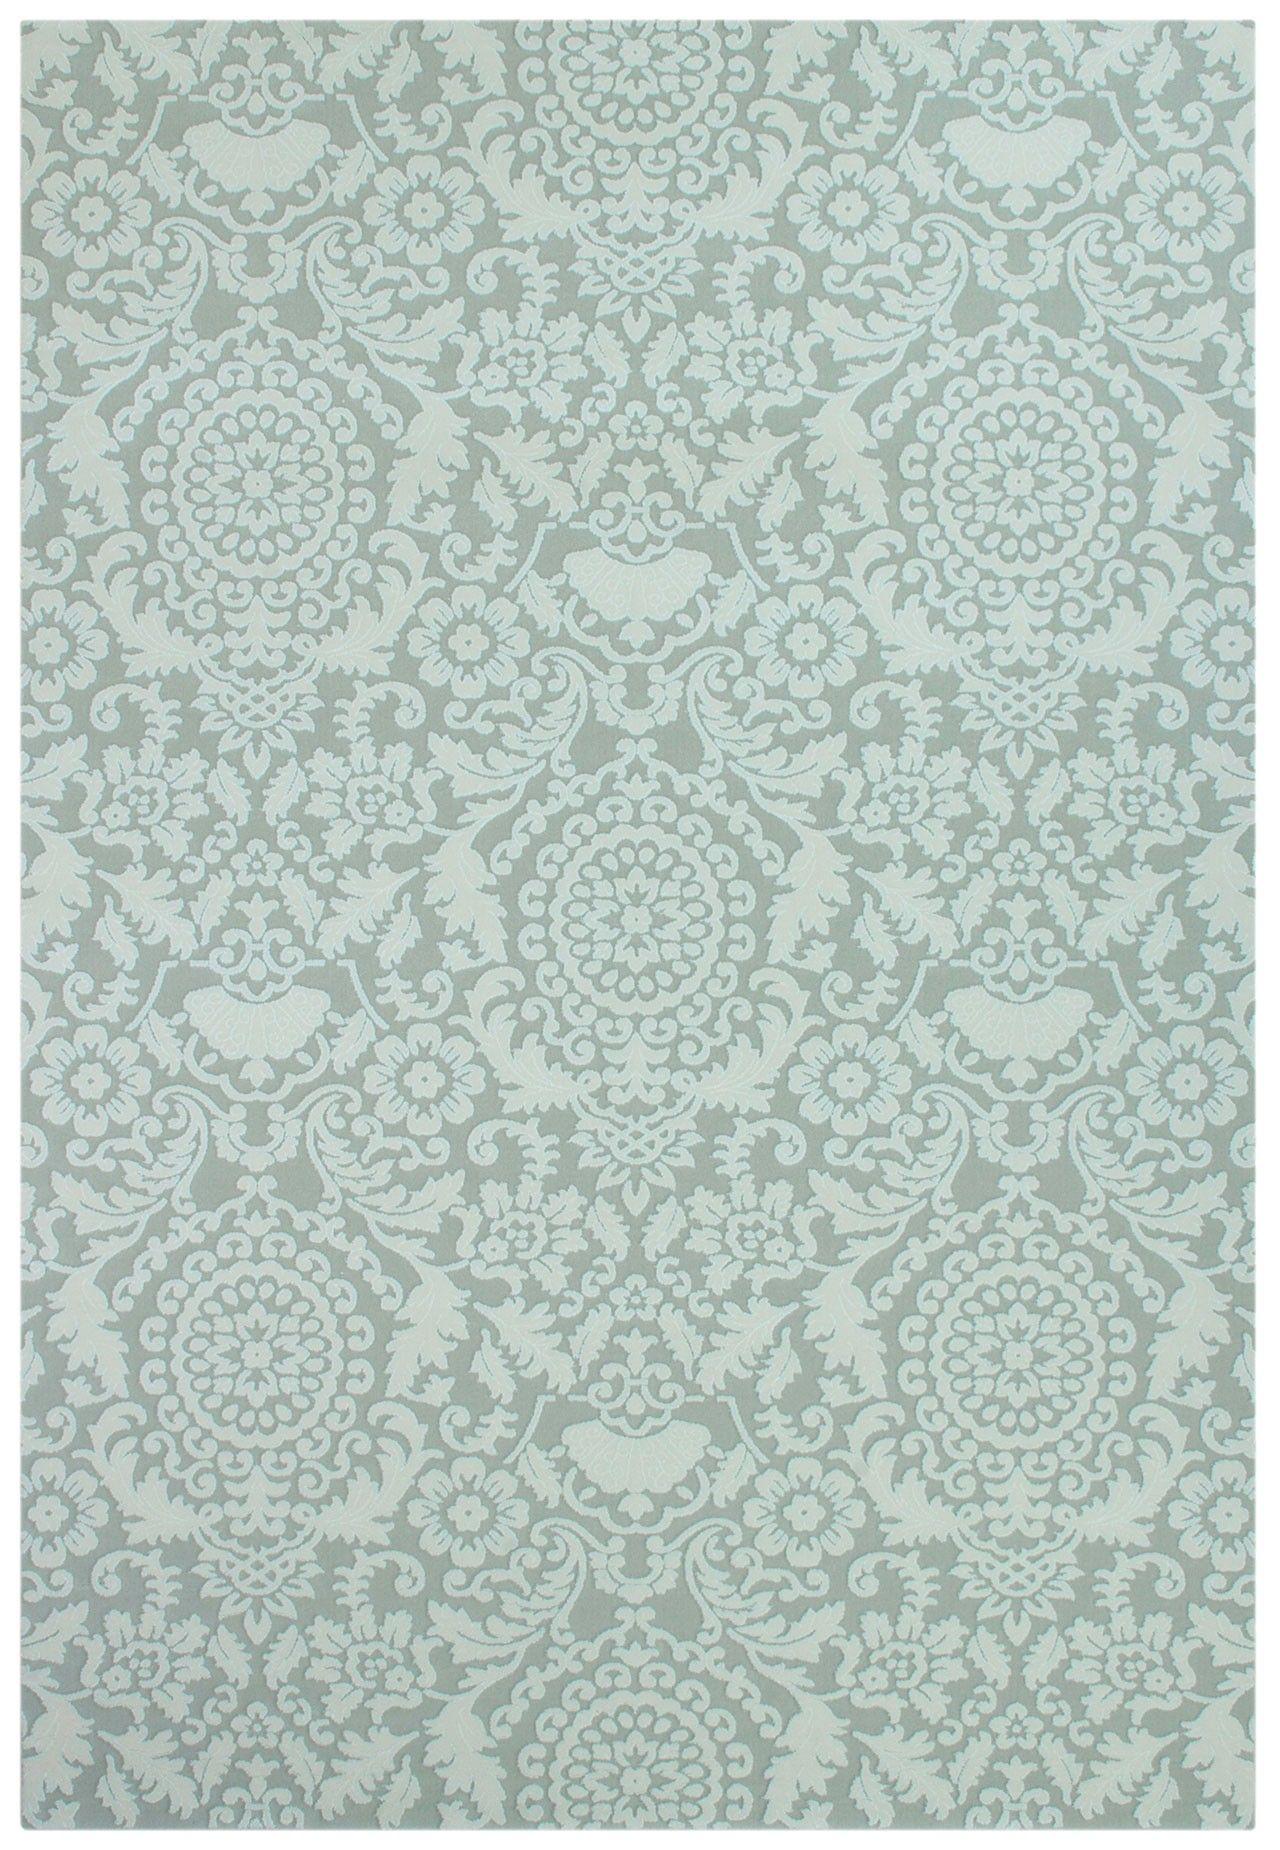 Benuta Teppich Mint Prato 8016 Light Green Teppich Carpet Orient Bordüren